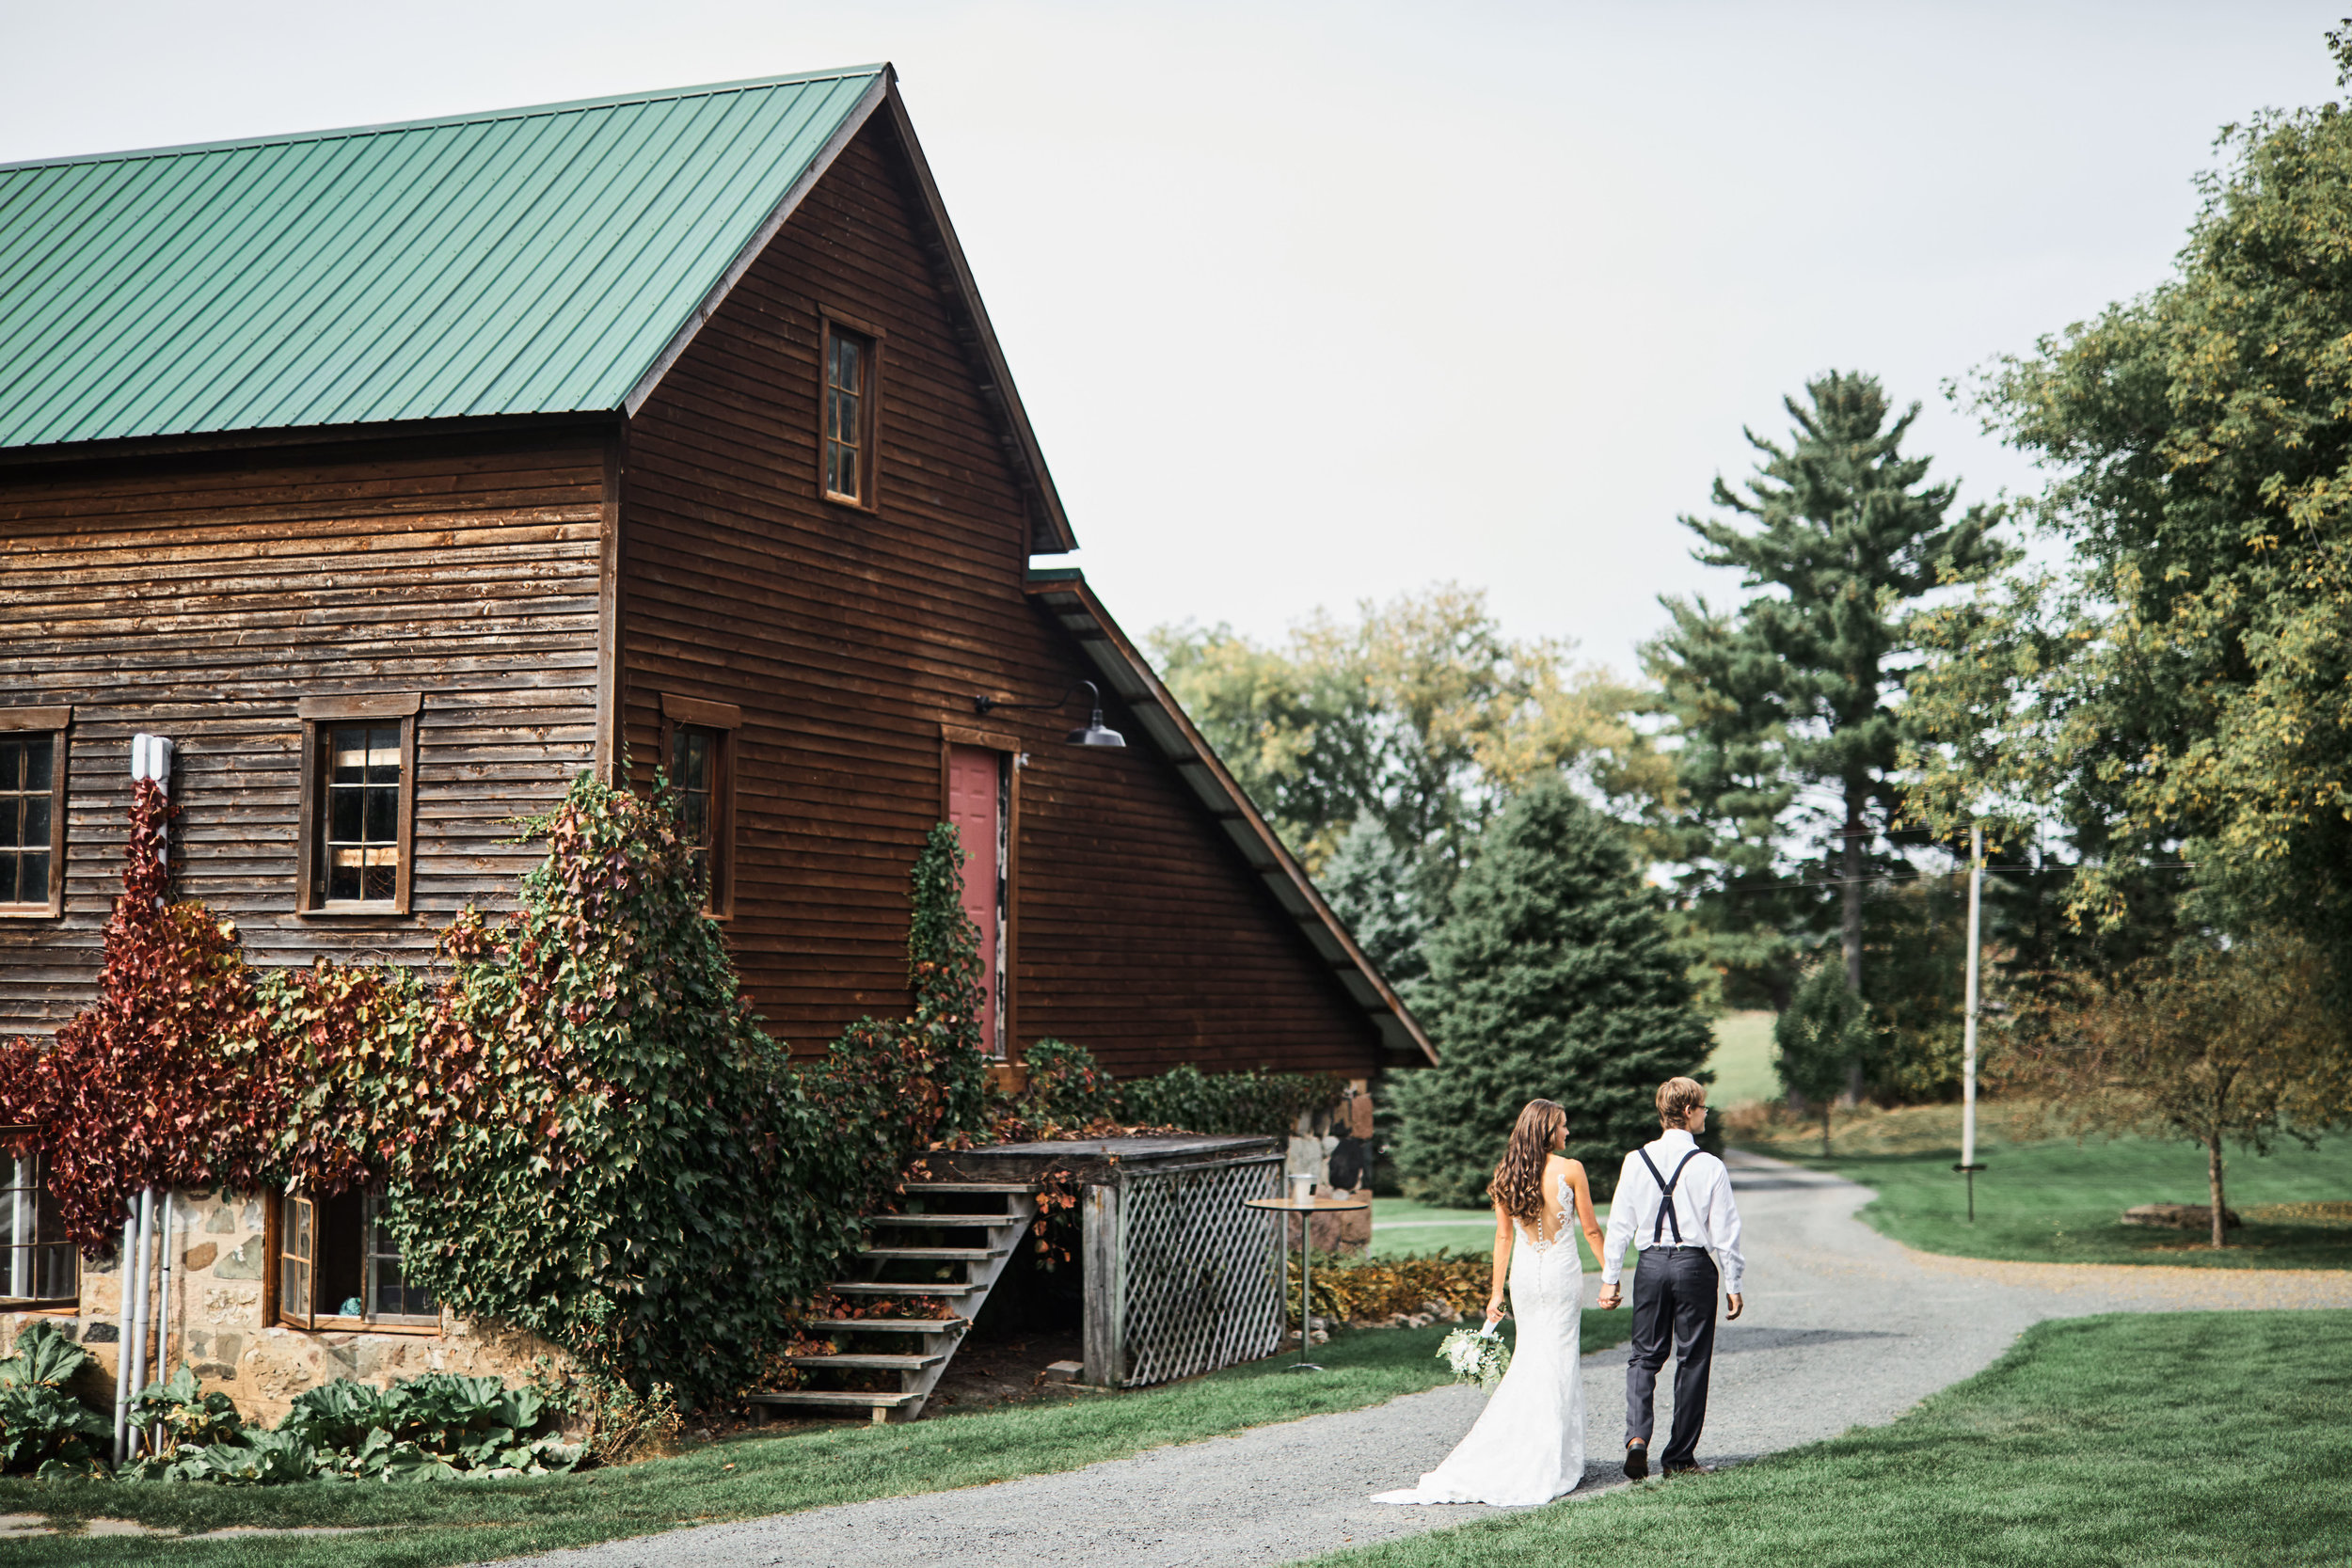 Birch-hill-barn-wedding-perry-james-photo279.jpg